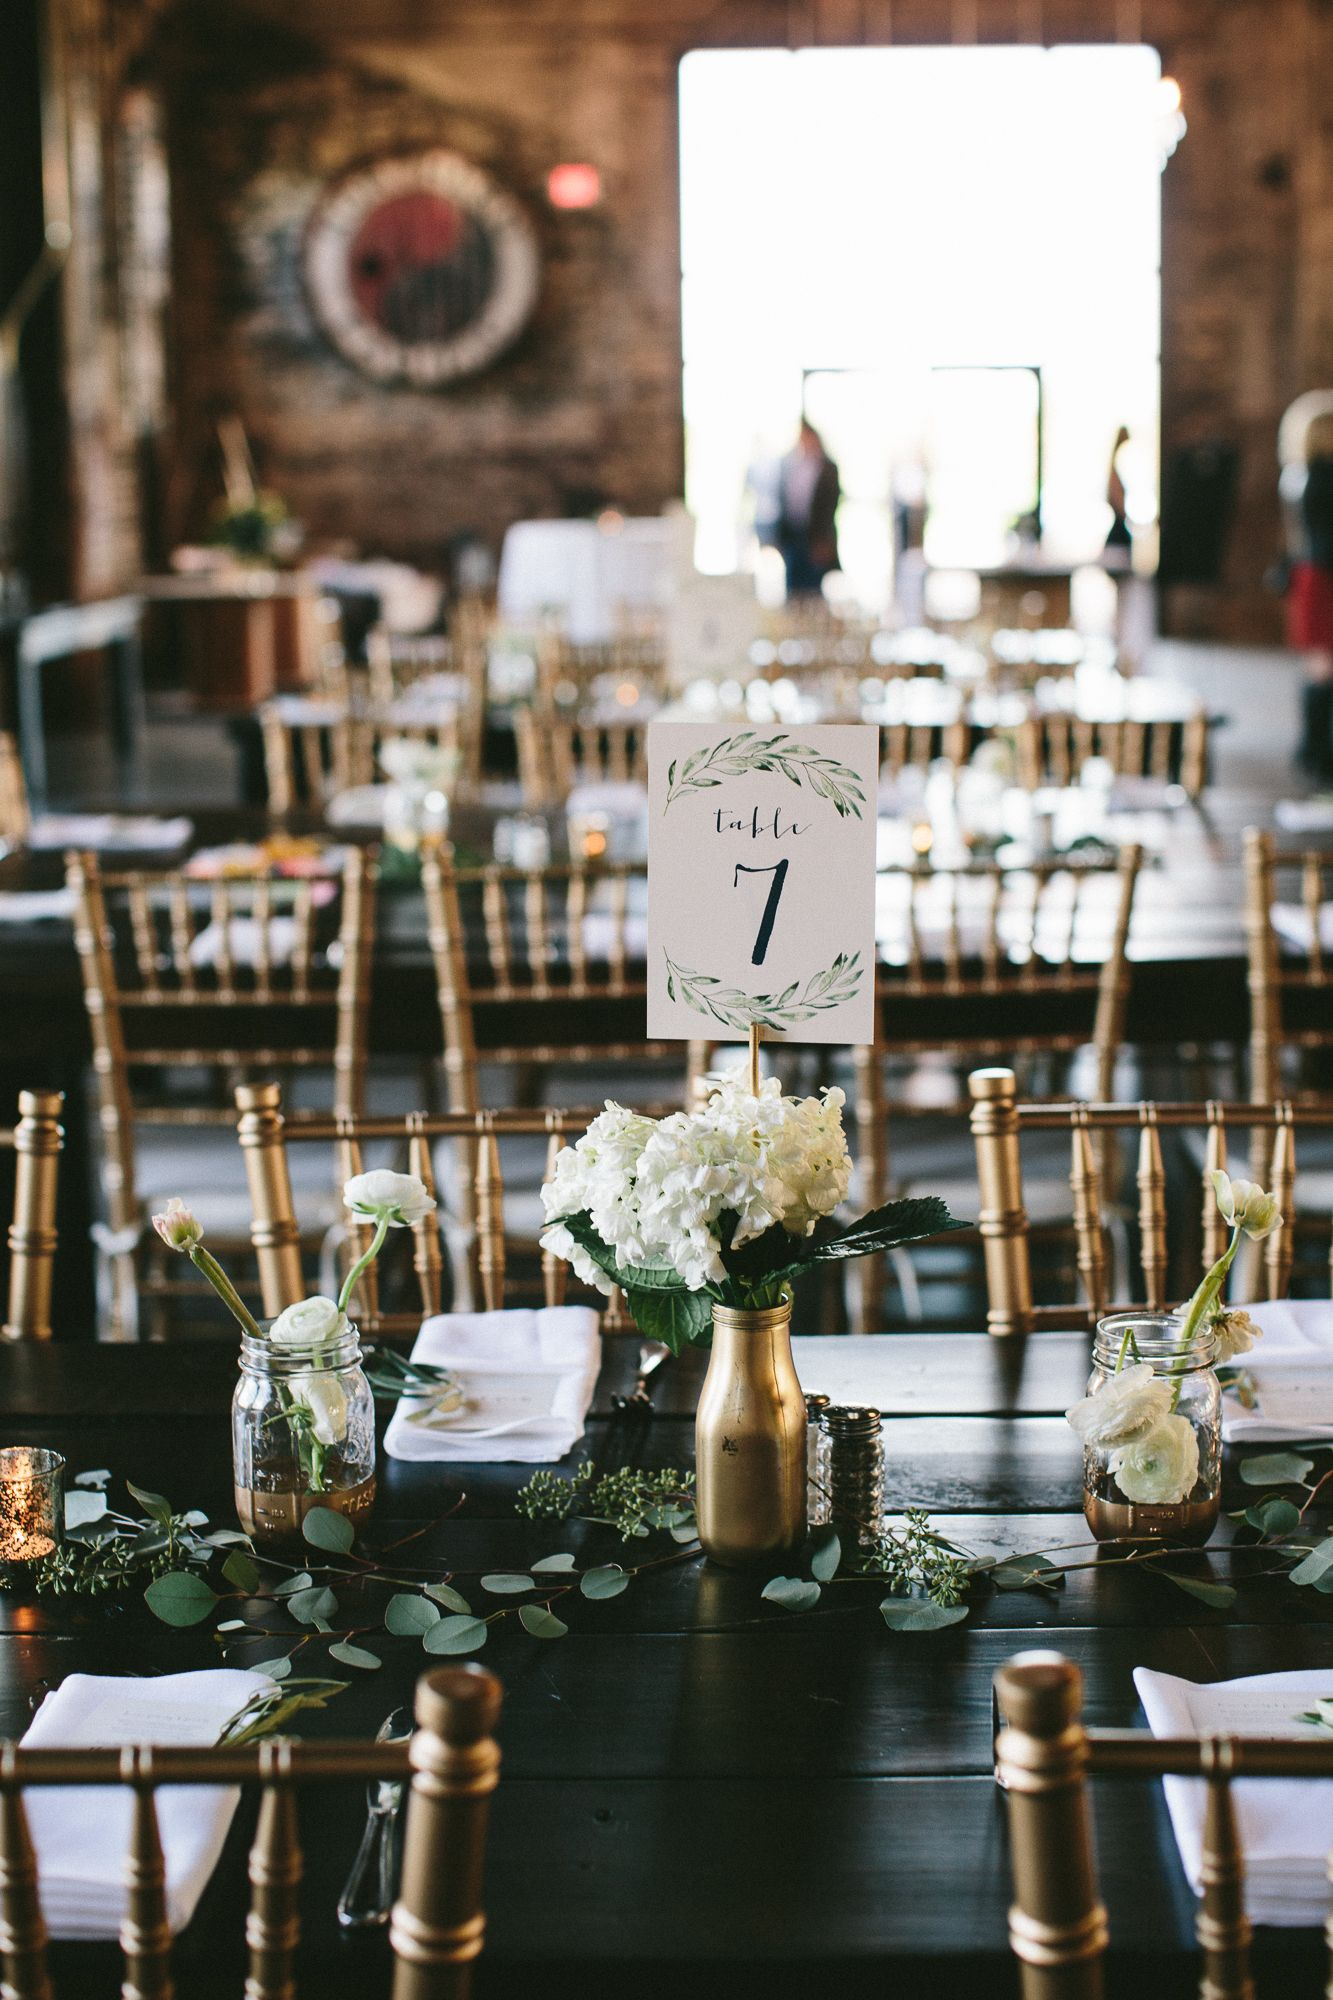 Simple wedding decoration ideas for reception  Pin by Courtney Gano on Reception Ideas  Pinterest  Elegant table